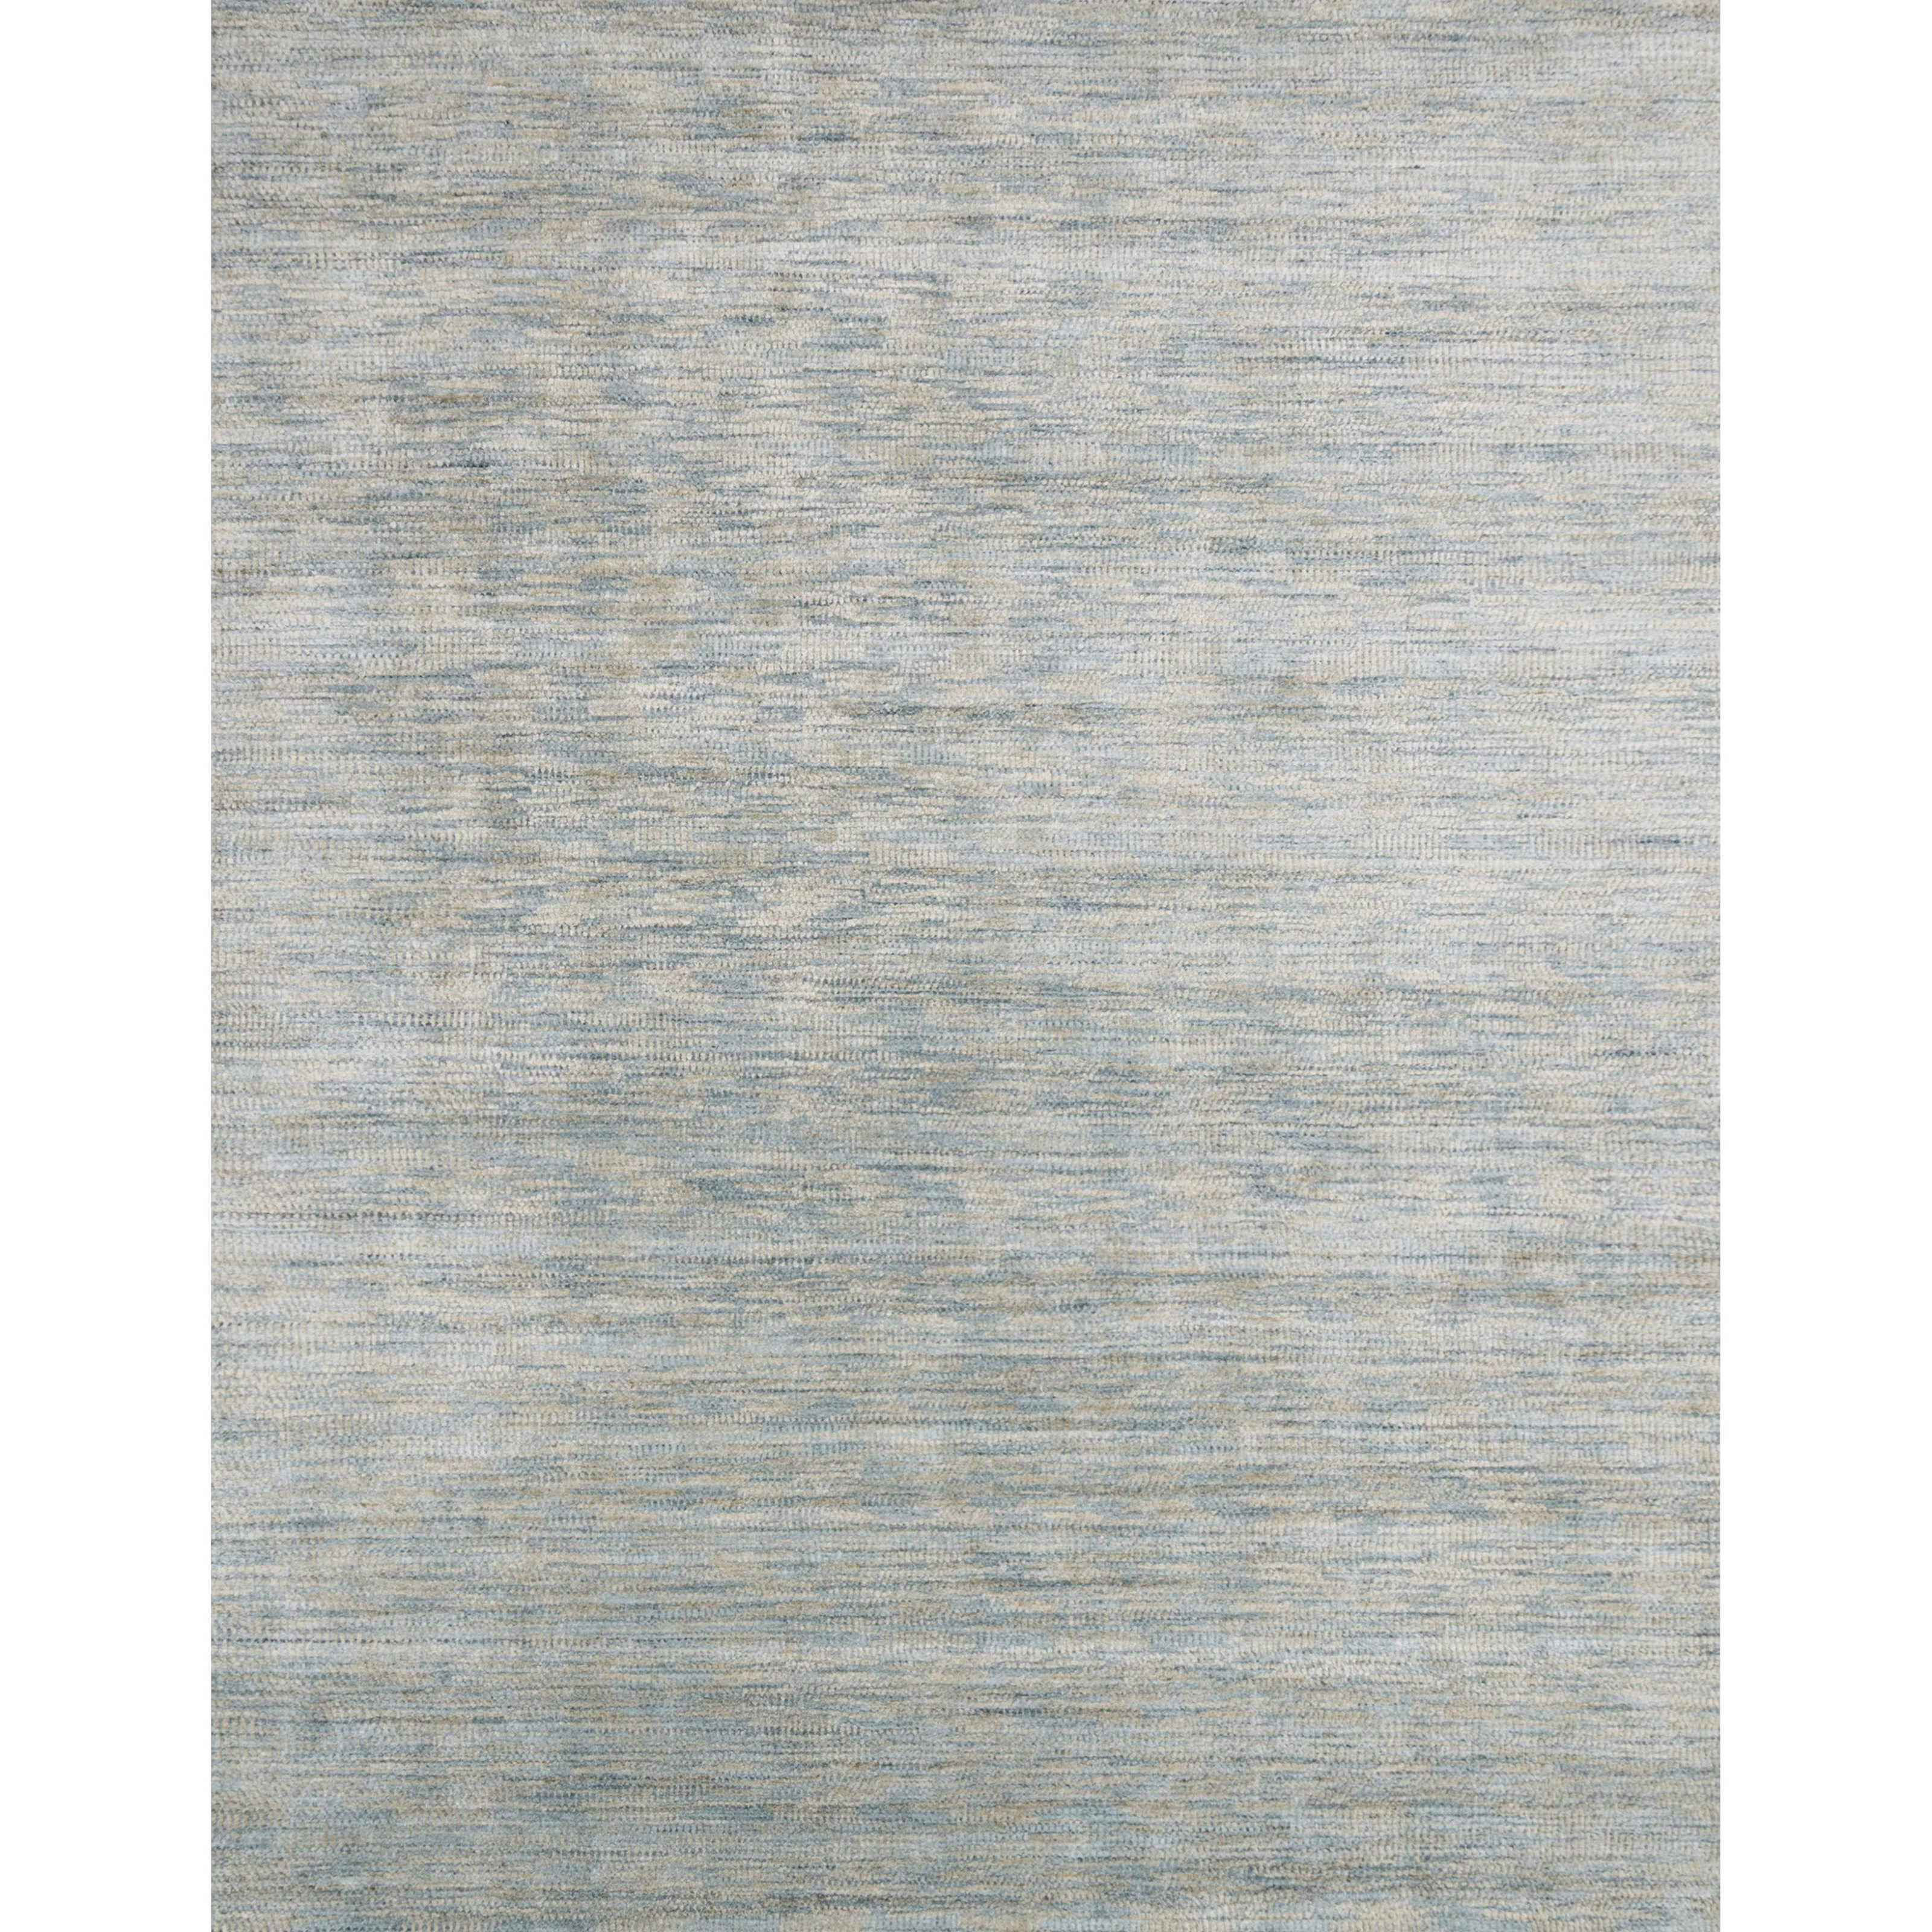 "Robin 5'6"" x 8'6"" Mist Rug by Loloi Rugs at Belfort Furniture"